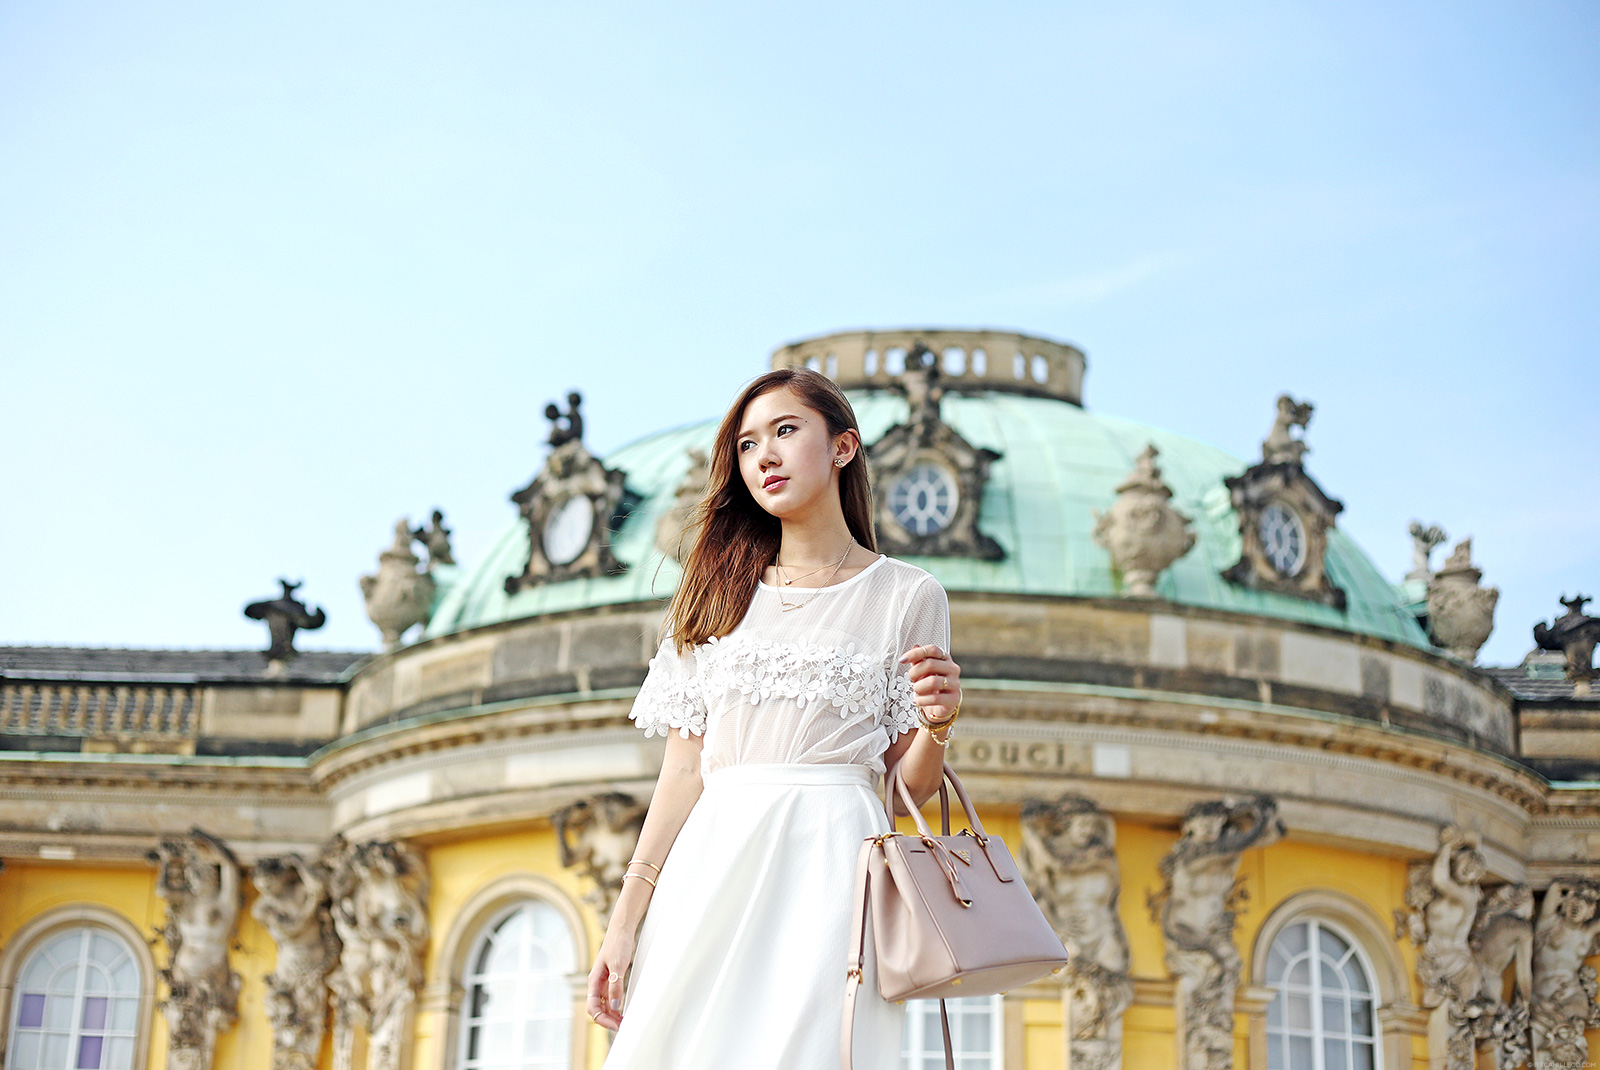 Style Blogger Camille Co at Schloss Sanssouci, Potsdam | itscamilleco.com